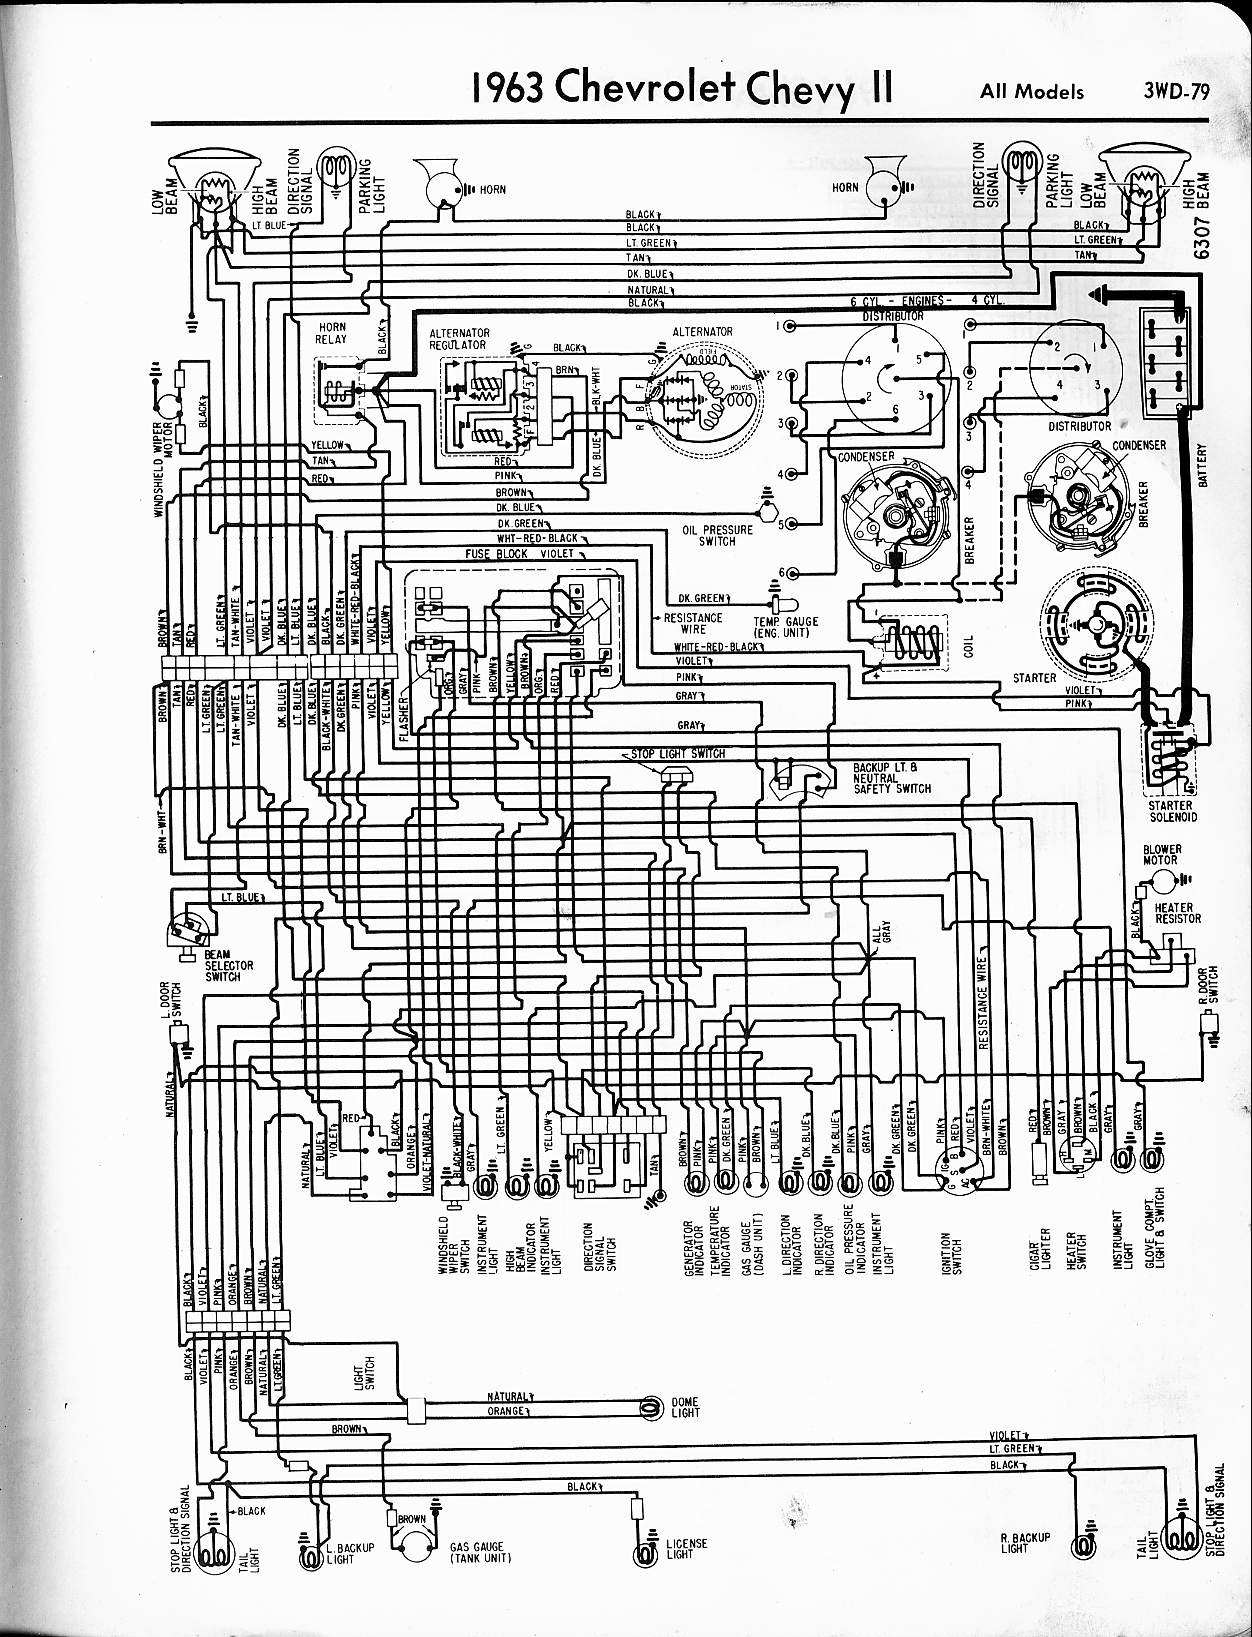 1963 chevrolet wiring diagram 1963 wiring diagrams online 57 65 chevy wiring diagrams